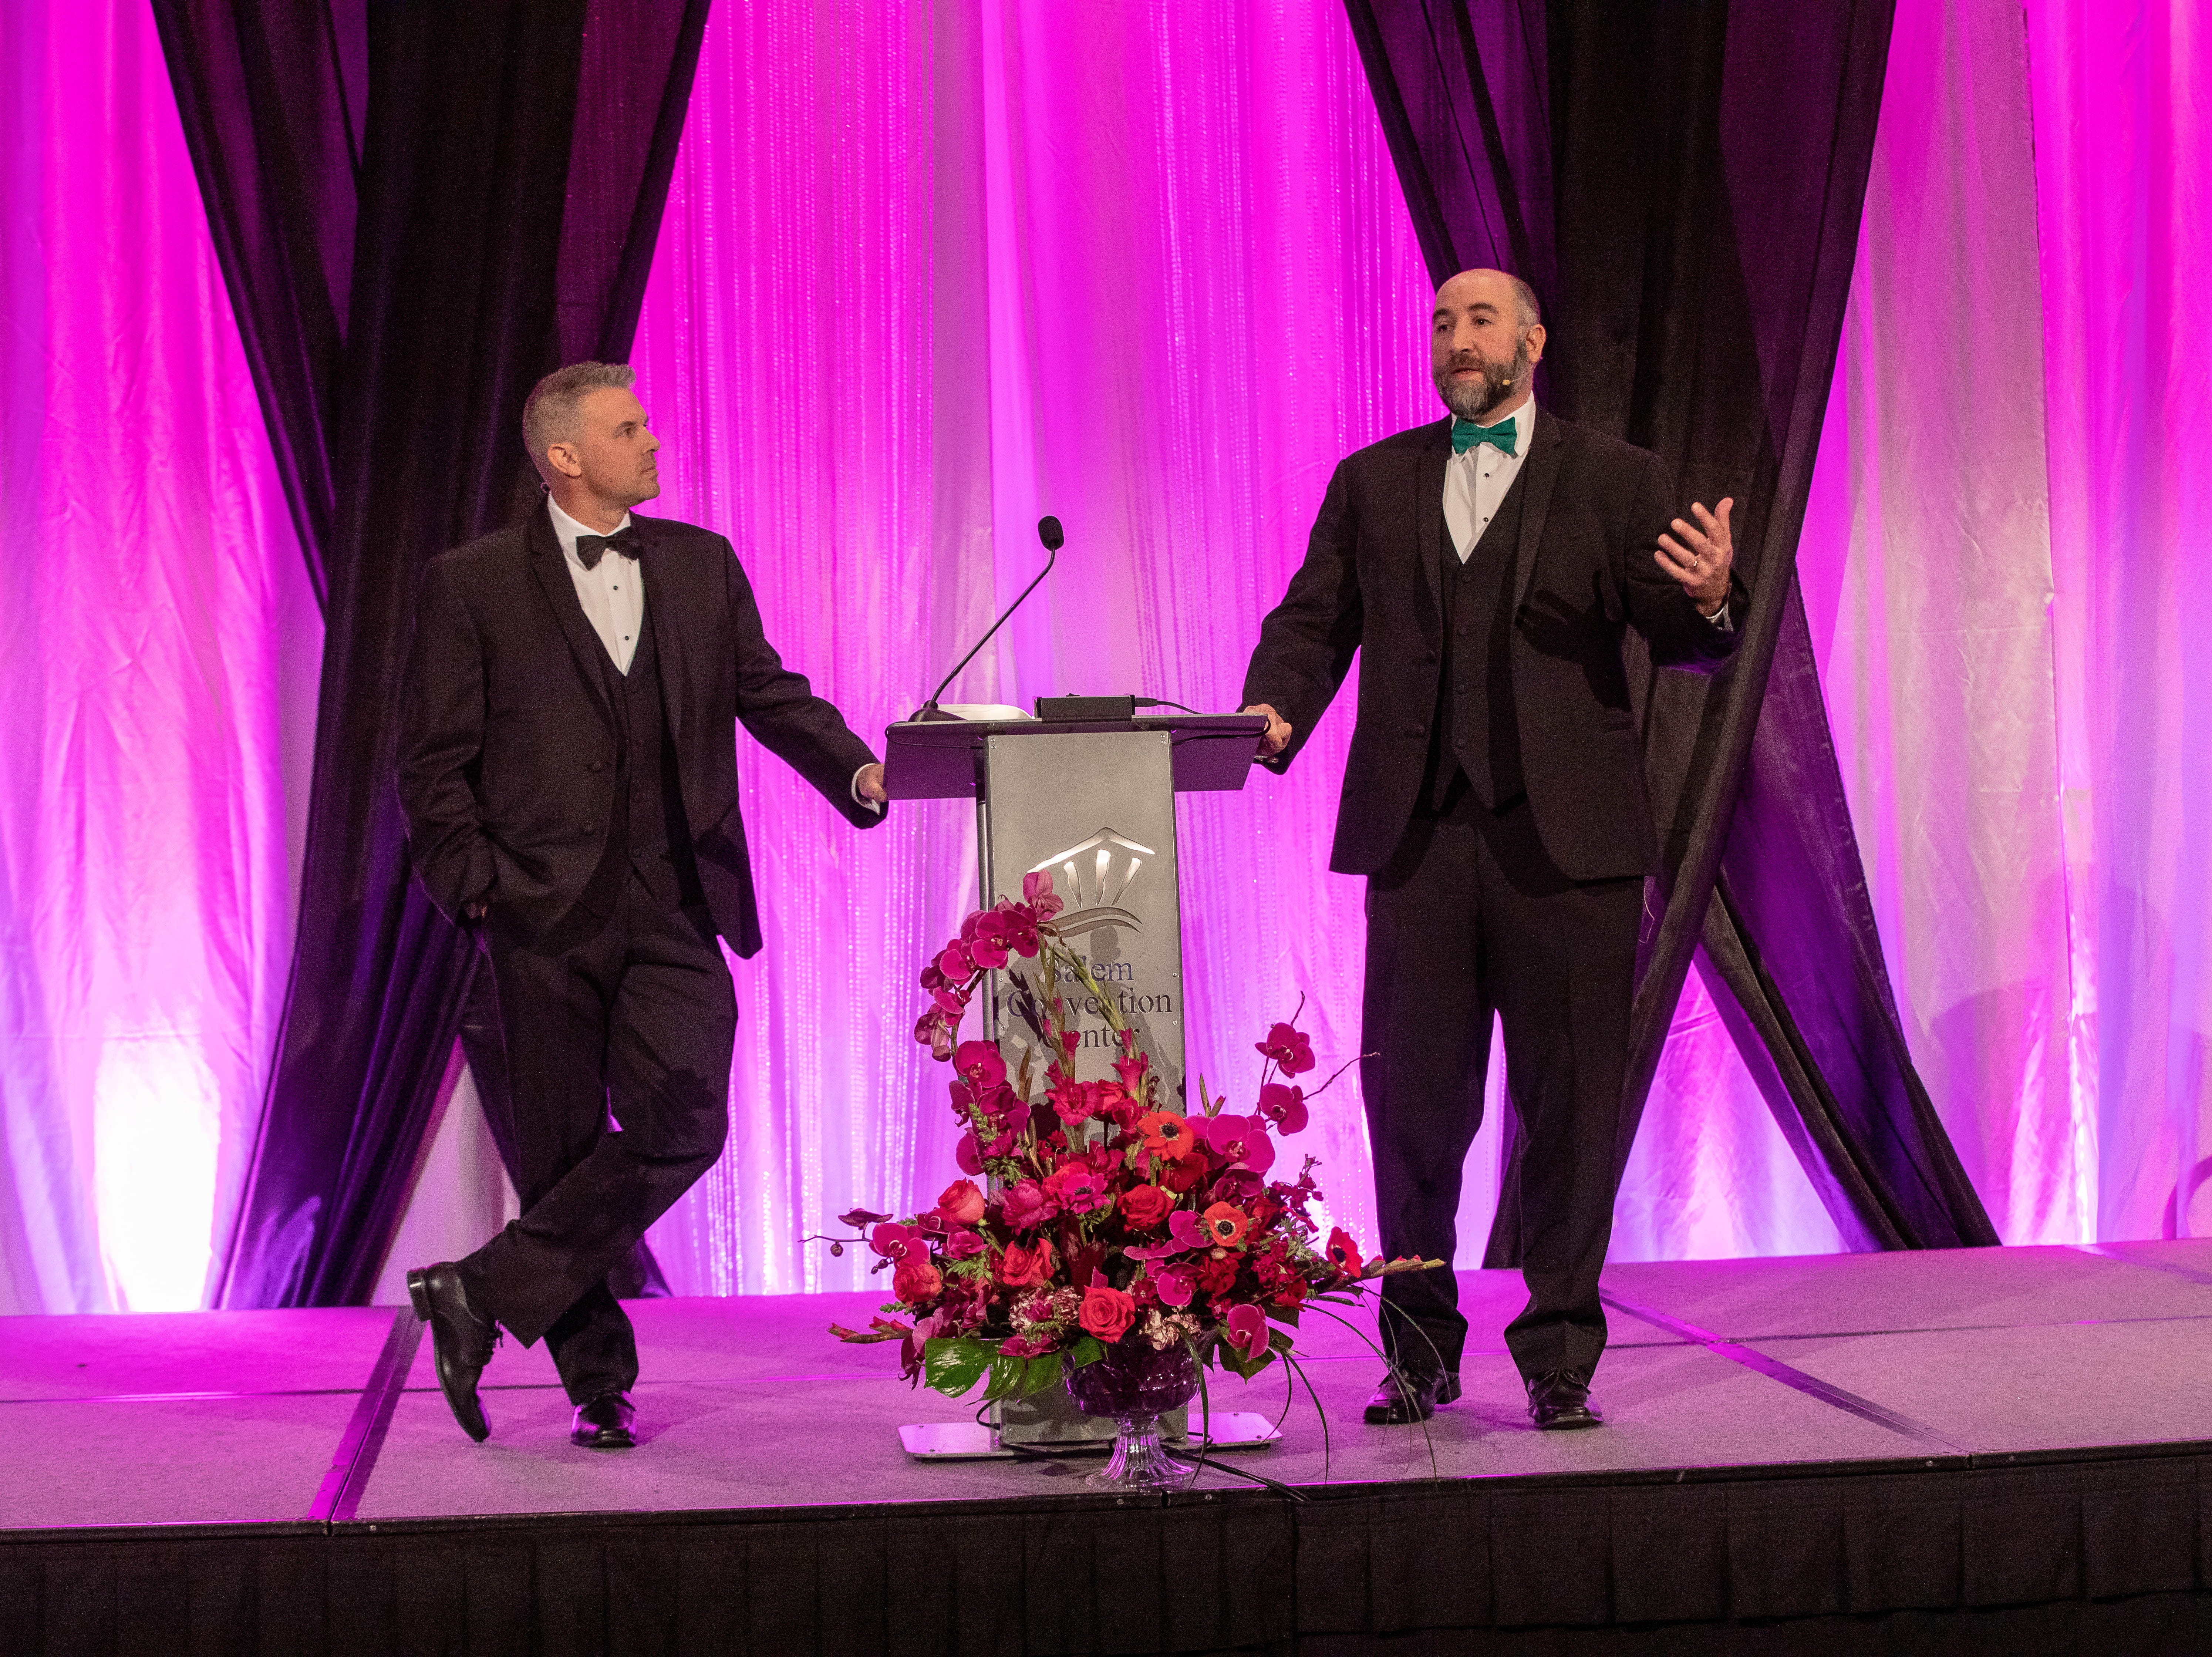 Don Sturgeon & TJ Sullivan, hosts of the First Citizen Awards Banquet March 8, 2019, at the Salem Convention Center.